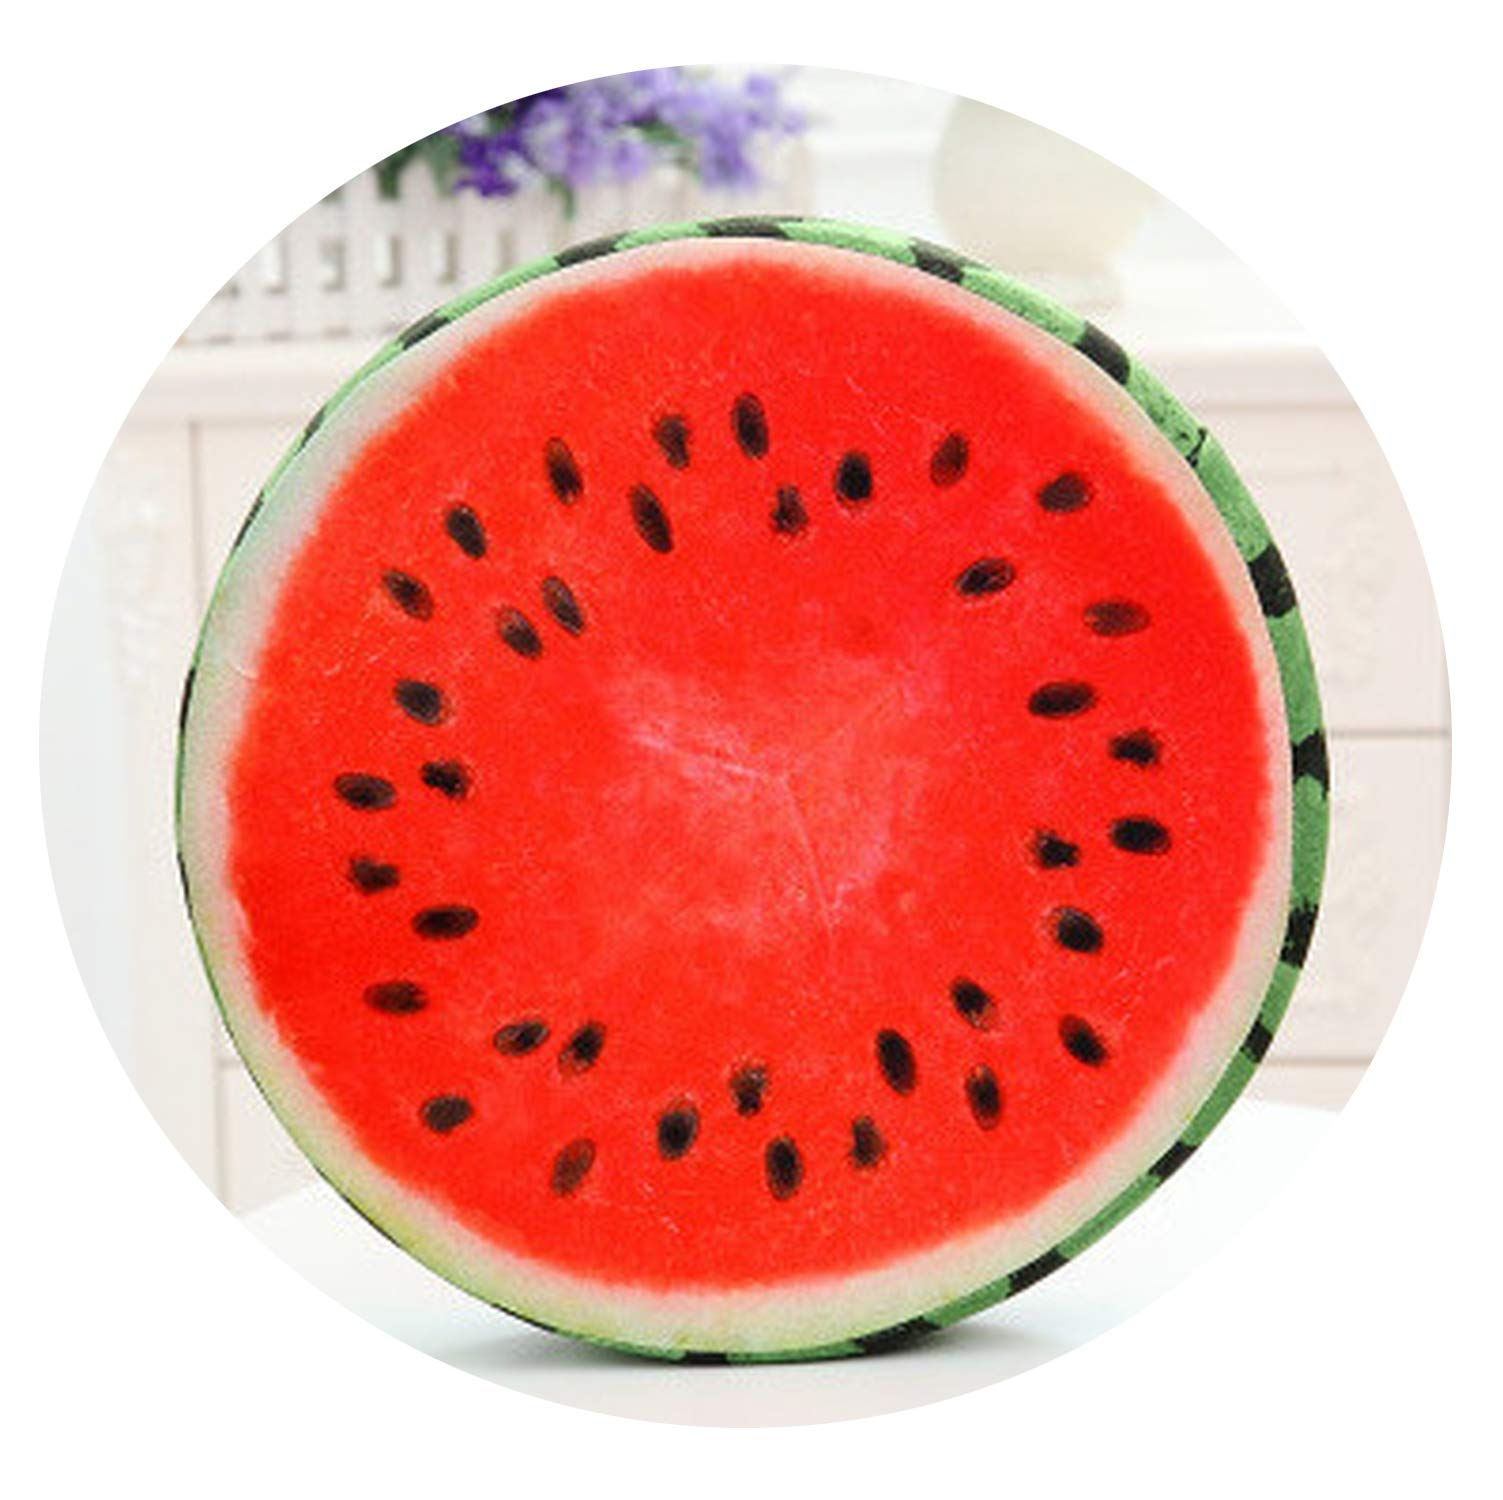 Throw Pillow Toy for Chair Seat Sofa Back by Delight eShop 1pc Kiwi 3D Fruit Cushion